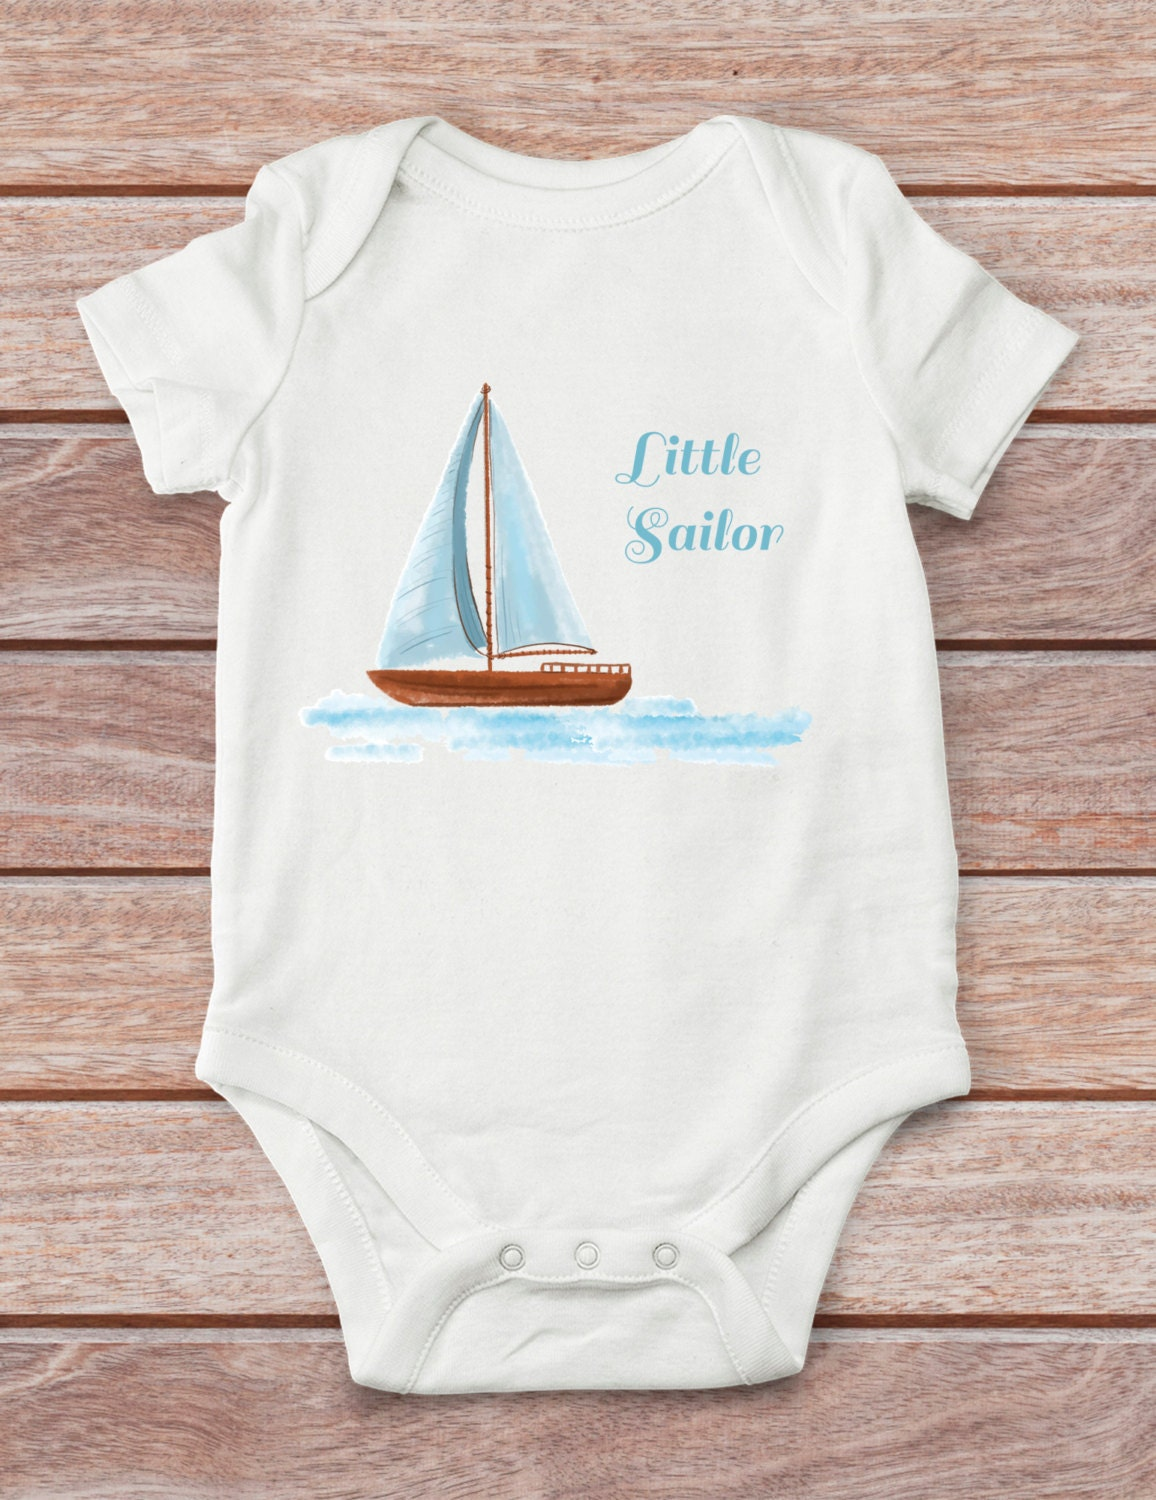 Little sailor bodysuit baby shower gift nautical boy